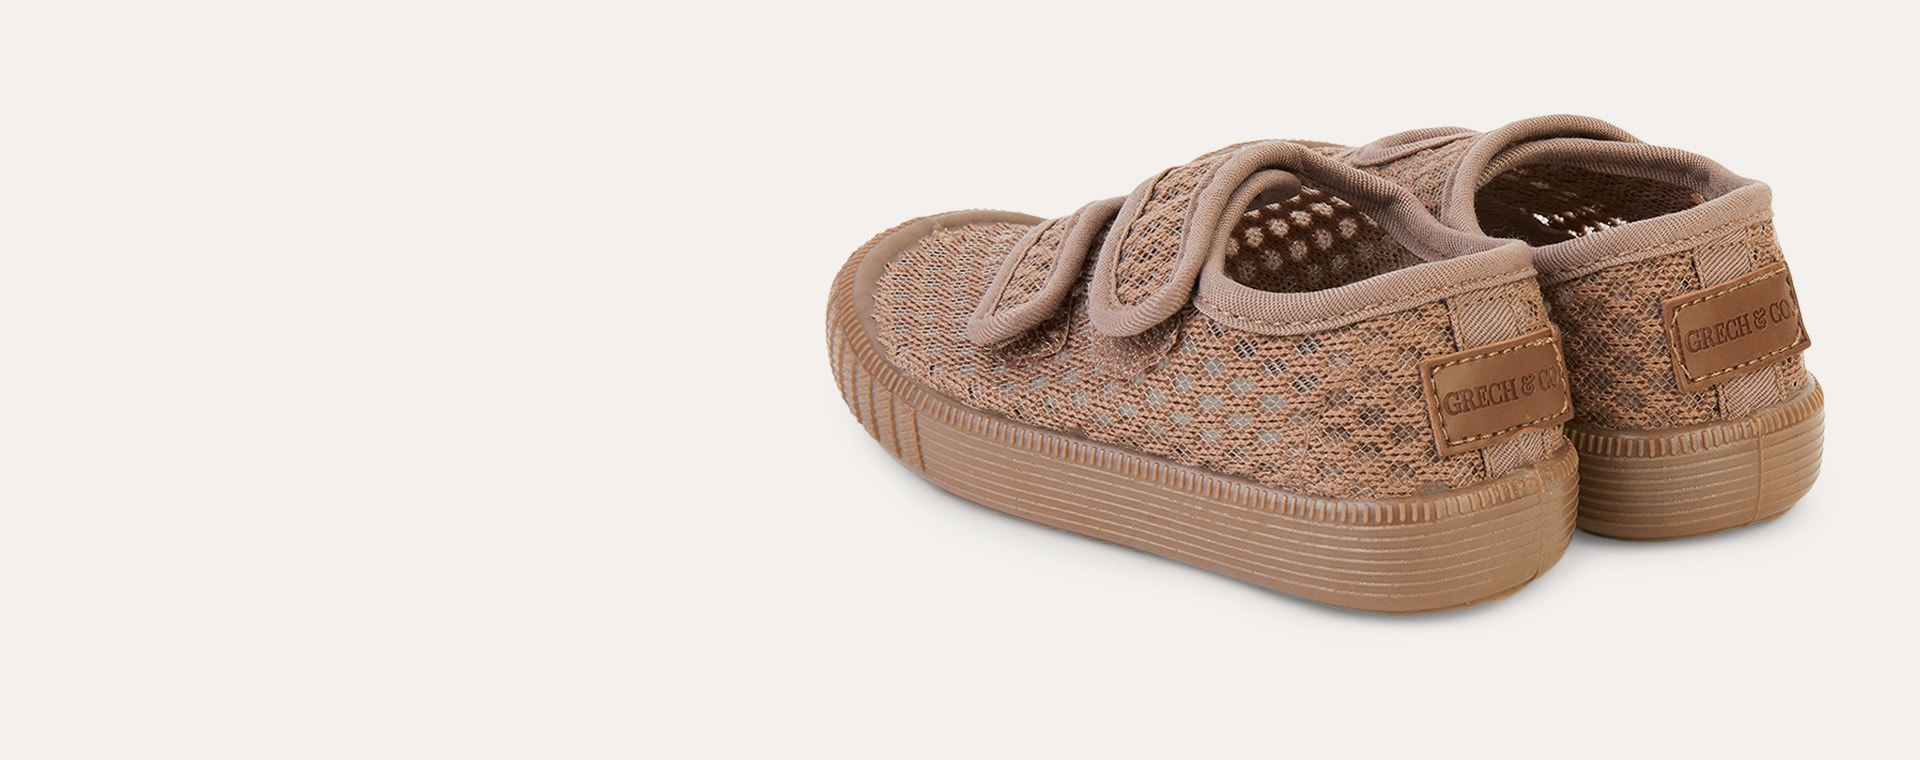 Stone Grech & Co Shoesies Play Shoes